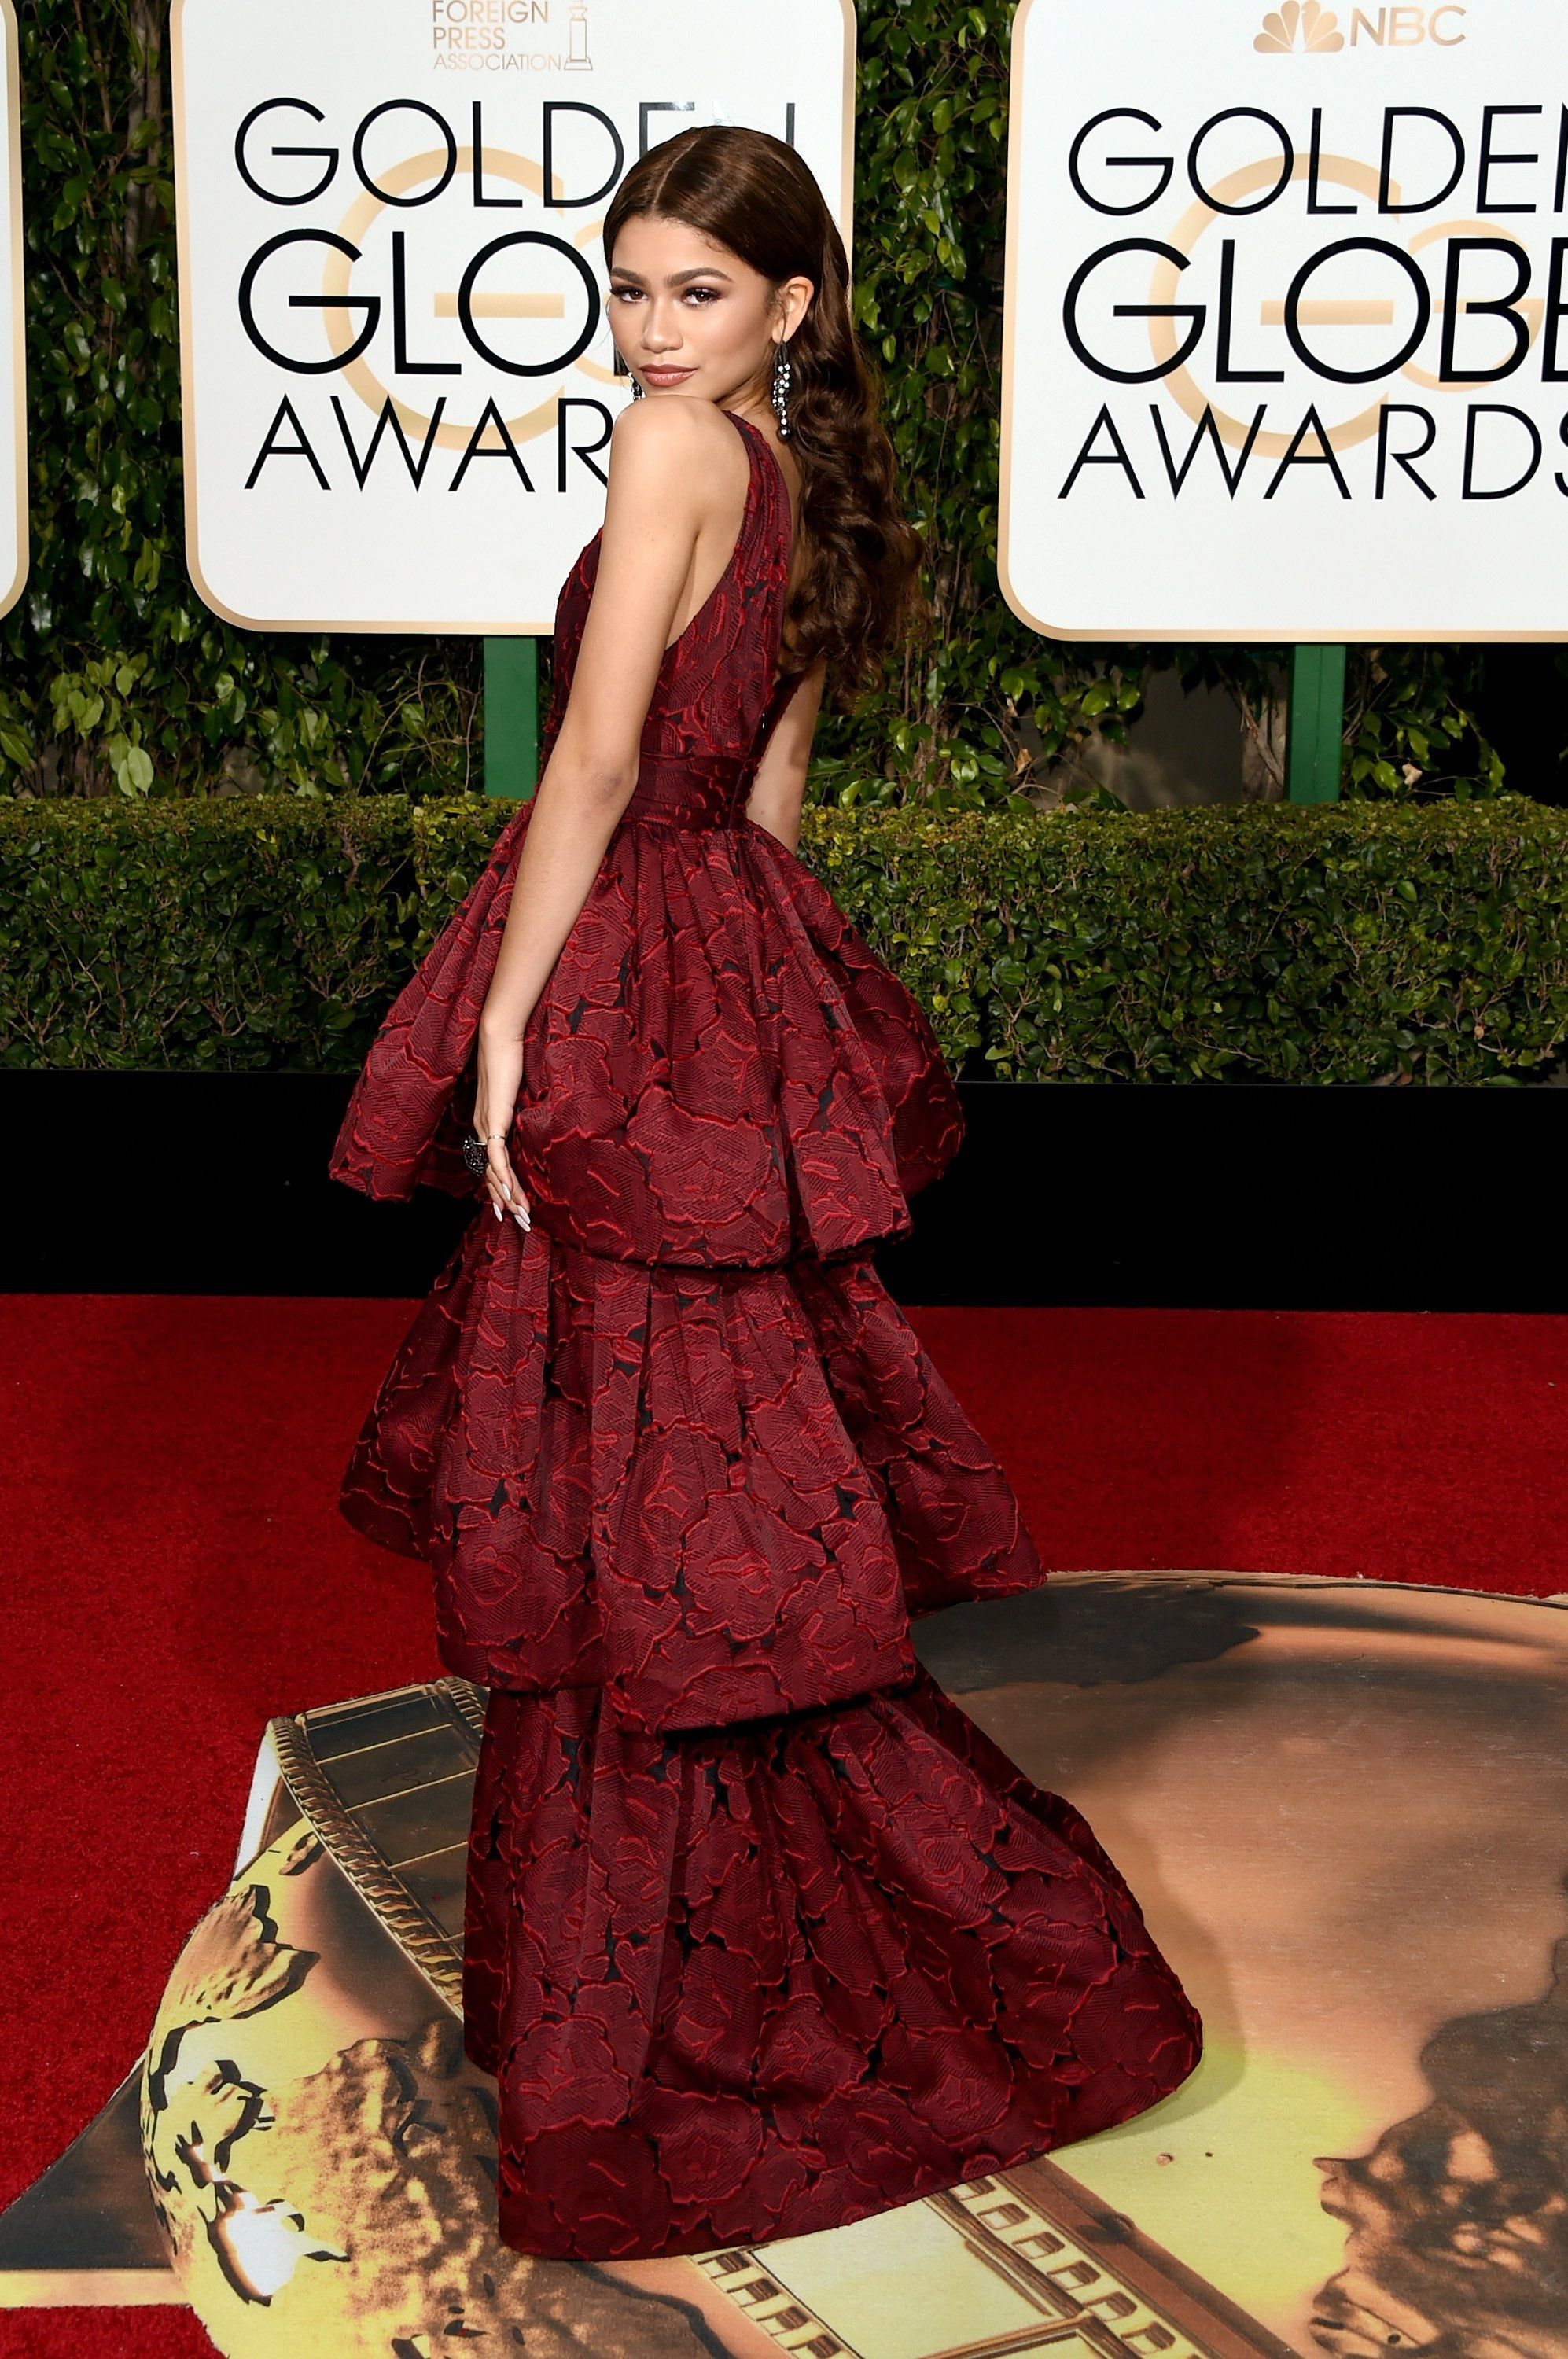 Golden globes fashionulive from the red carpet moda de